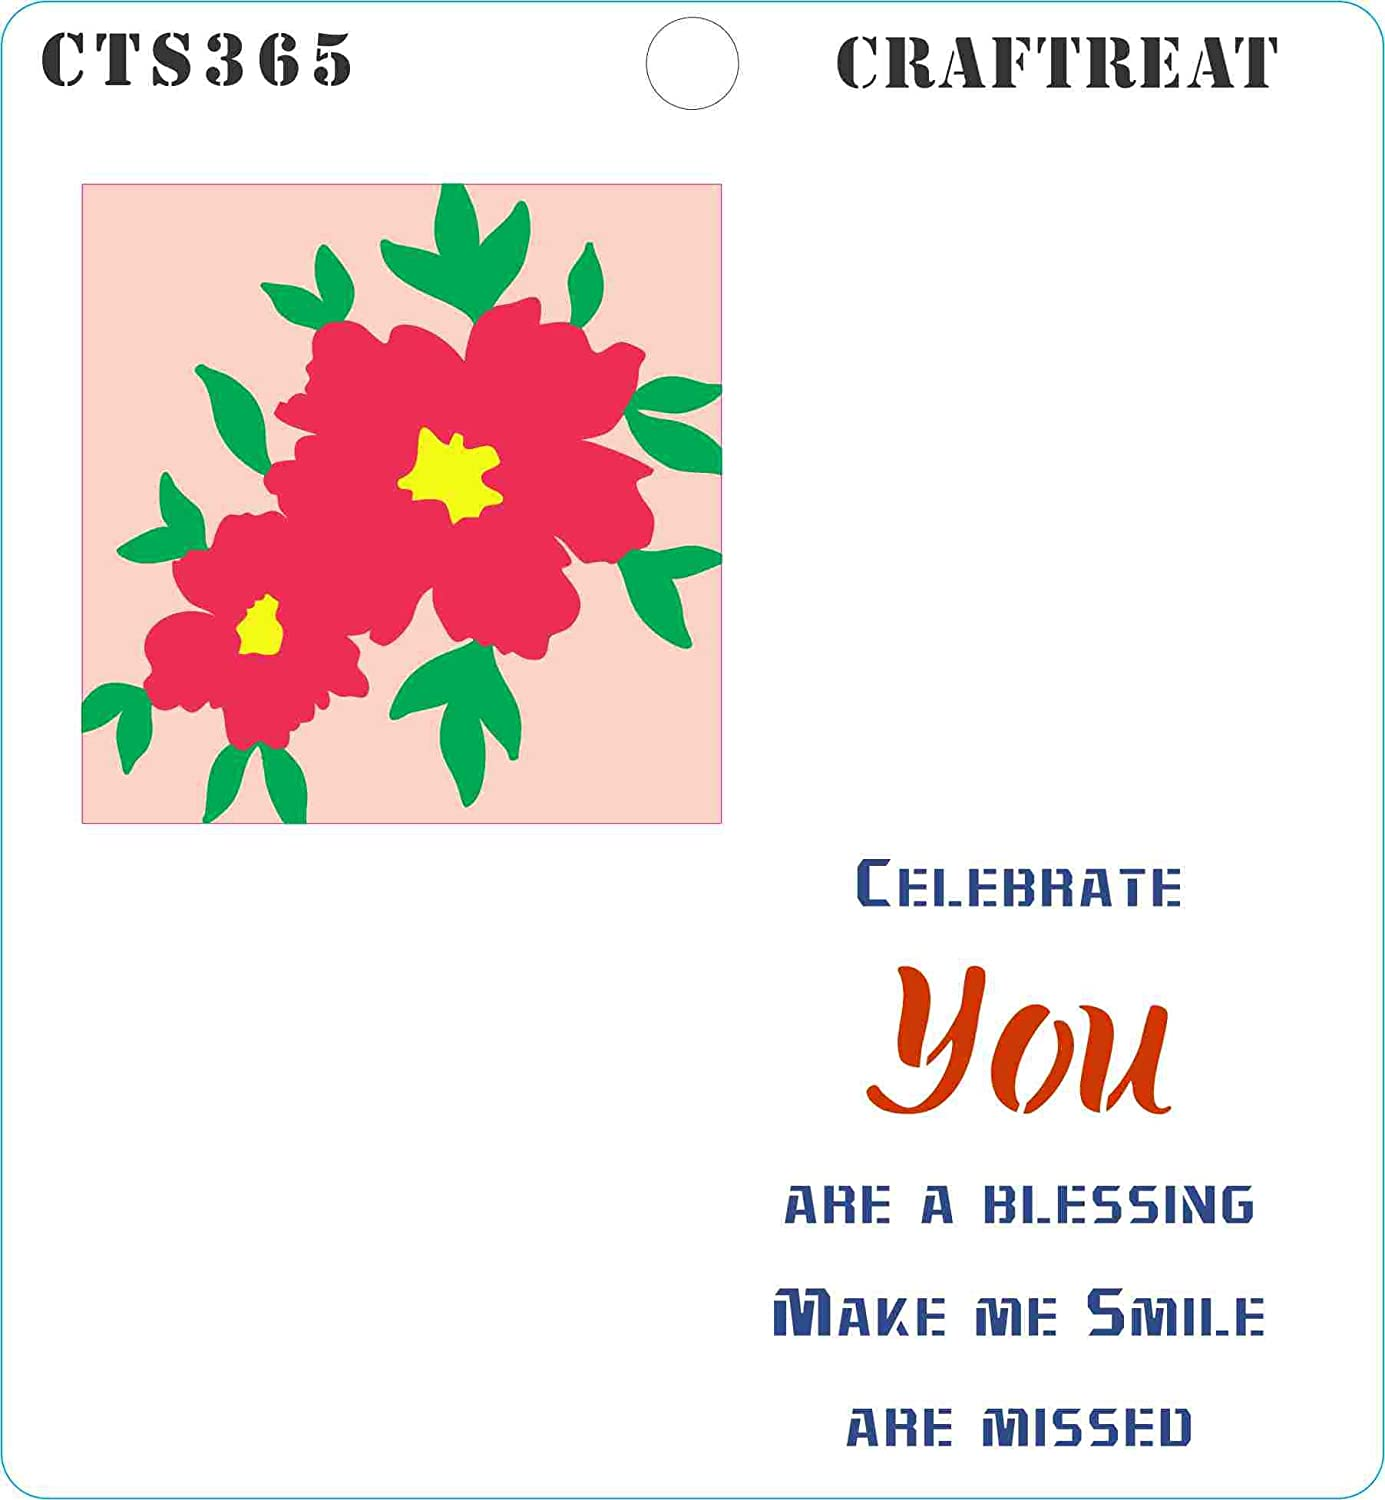 Crafting Home Decor Reusable Painting Template for Journal Fabric 6x6 inches Flower Fusion Sunflower Notebook Scrapbook and Printing on Paper CrafTreat Stencil Tile Wall DIY Albums Floor